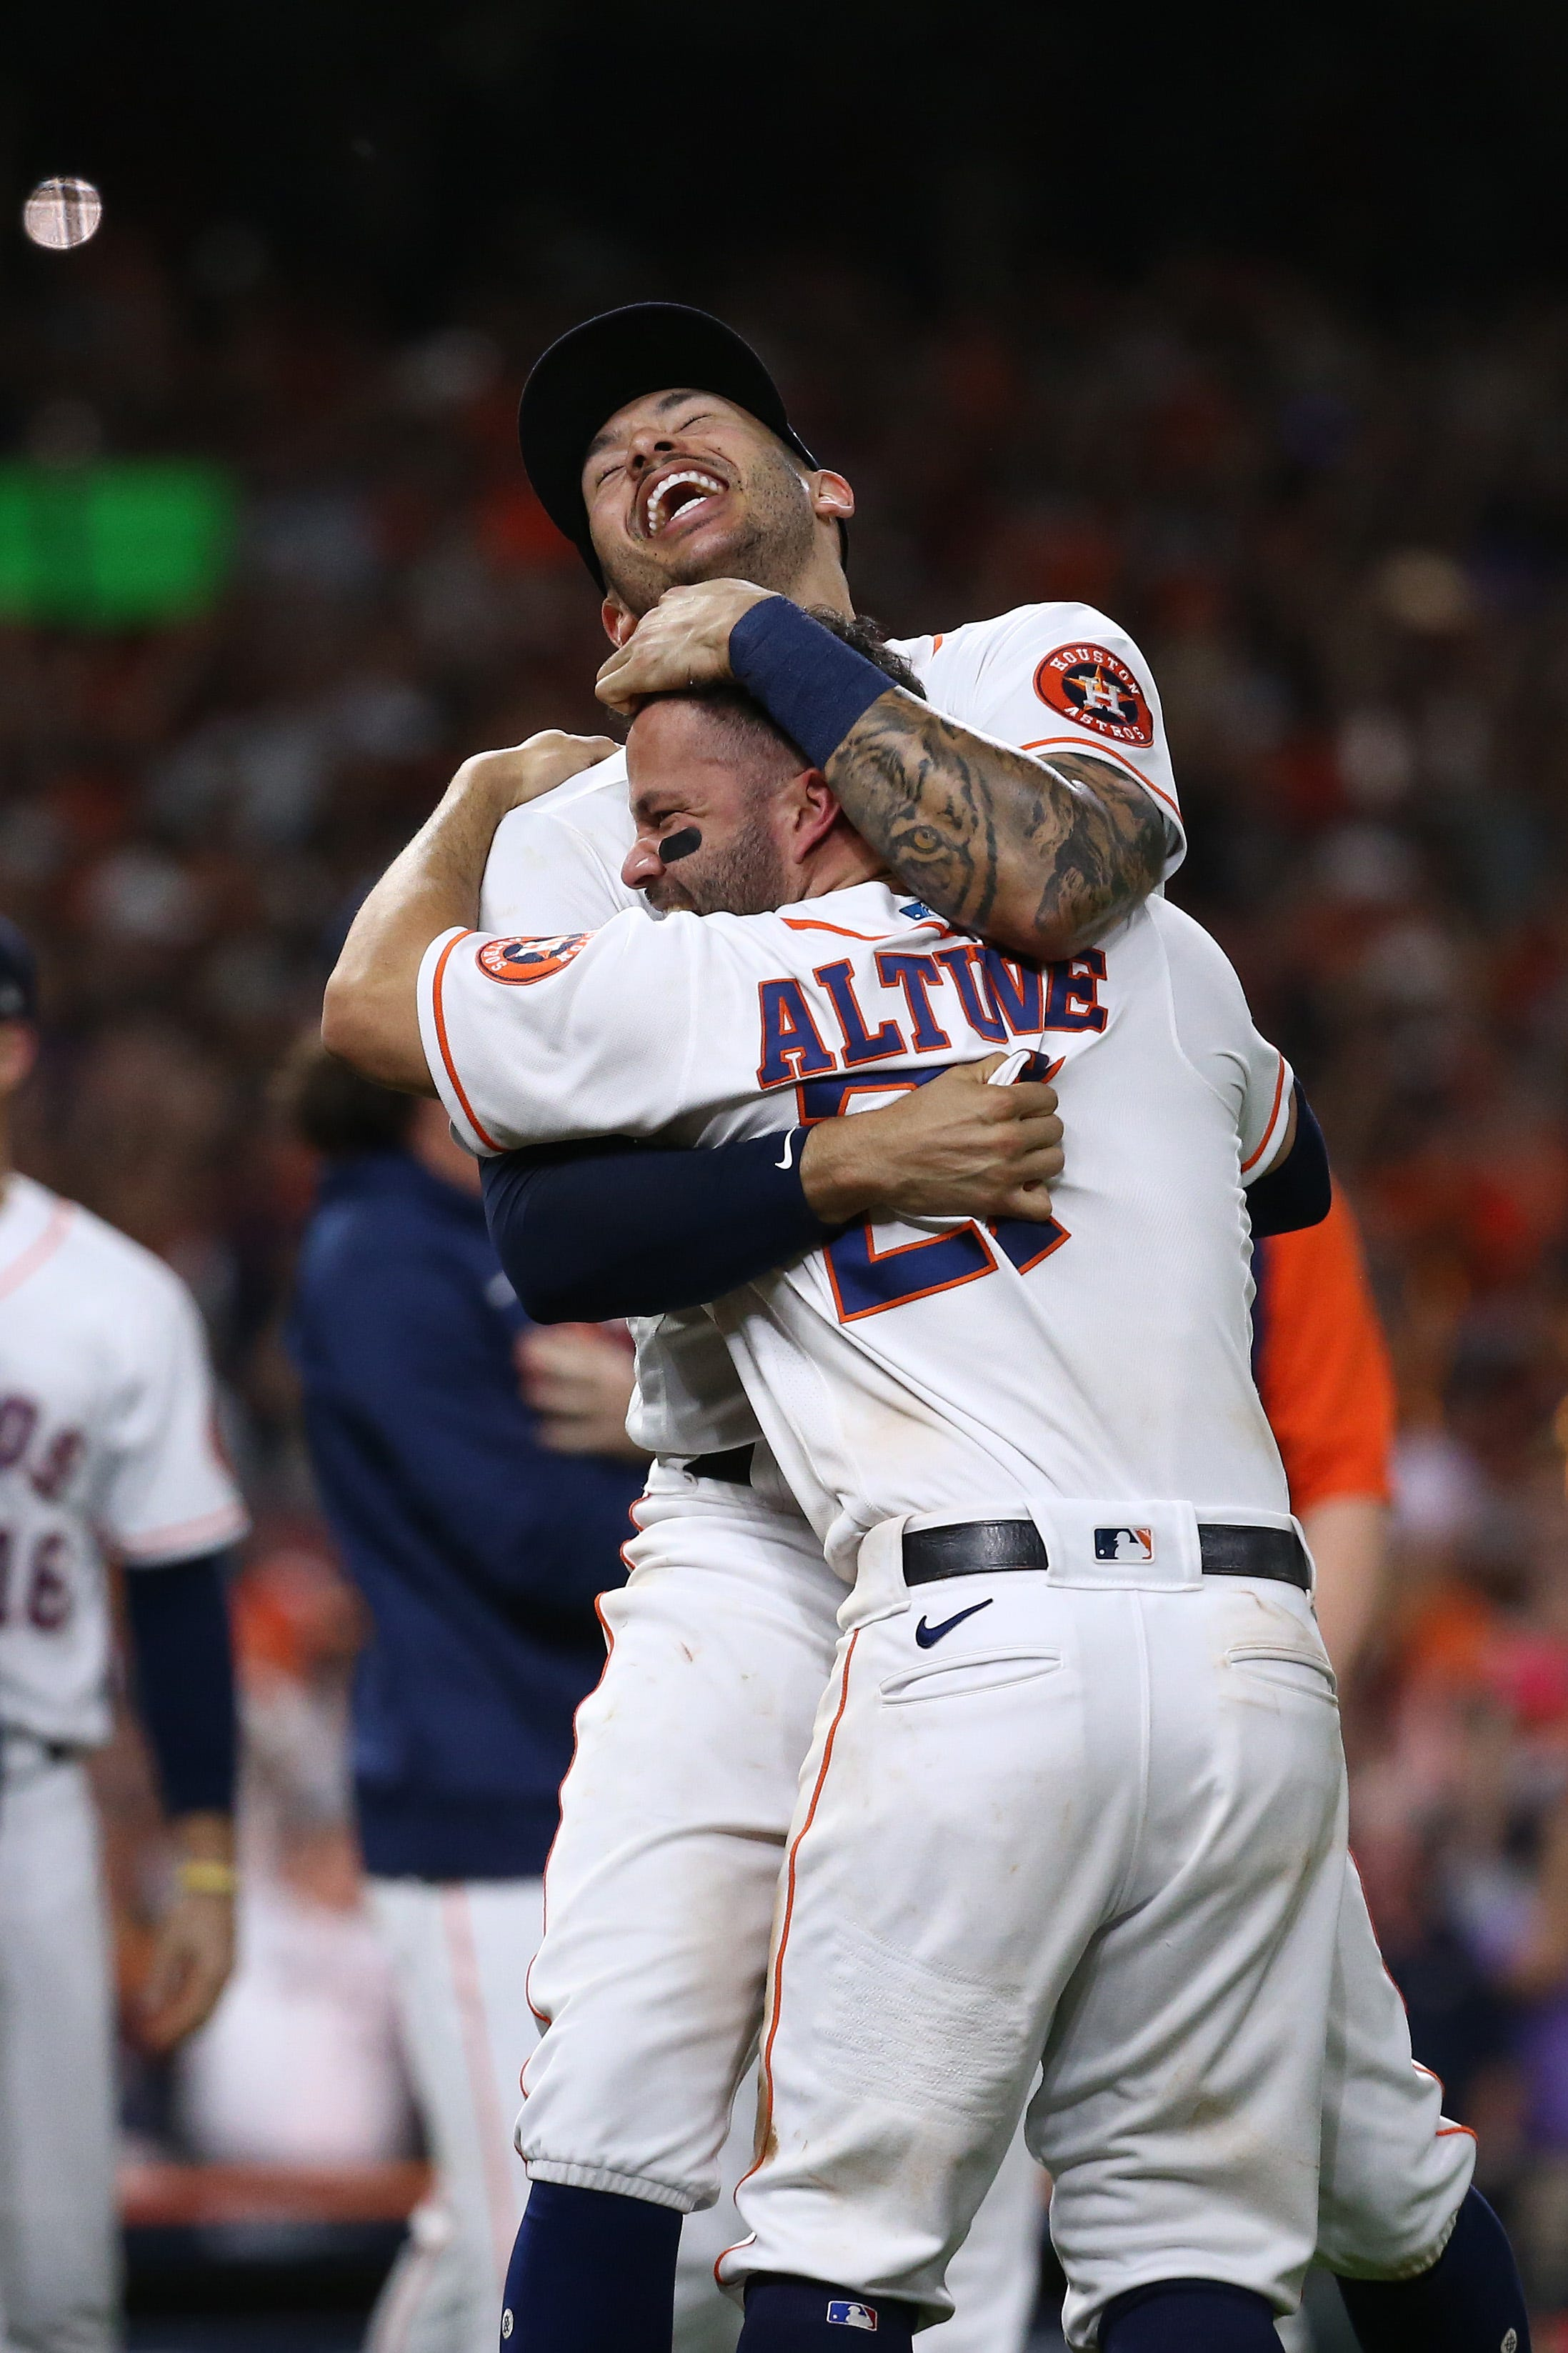 Astros close out Red Sox in Game 6 of ALCS, return to World Series for third time in five seasons